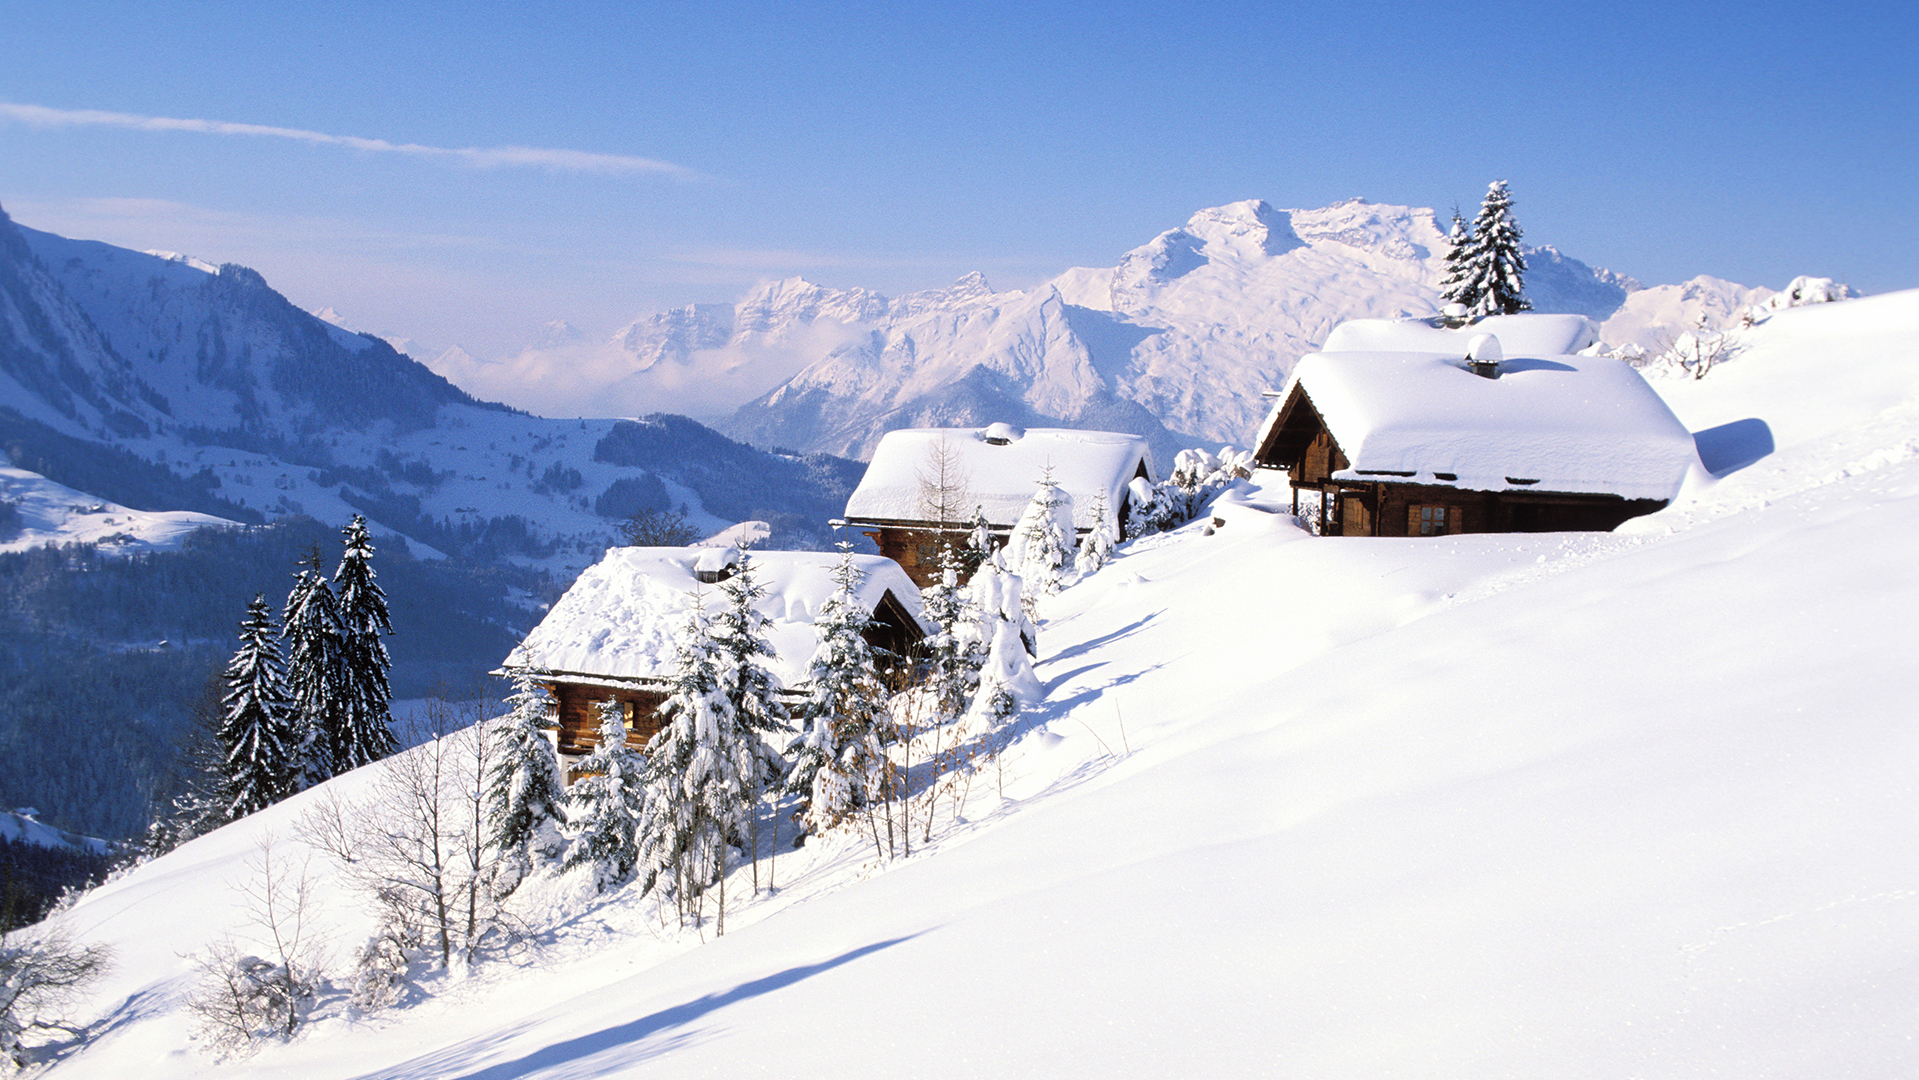 Luxury La Clusaz France Holidays In Europe Ski From Carrier